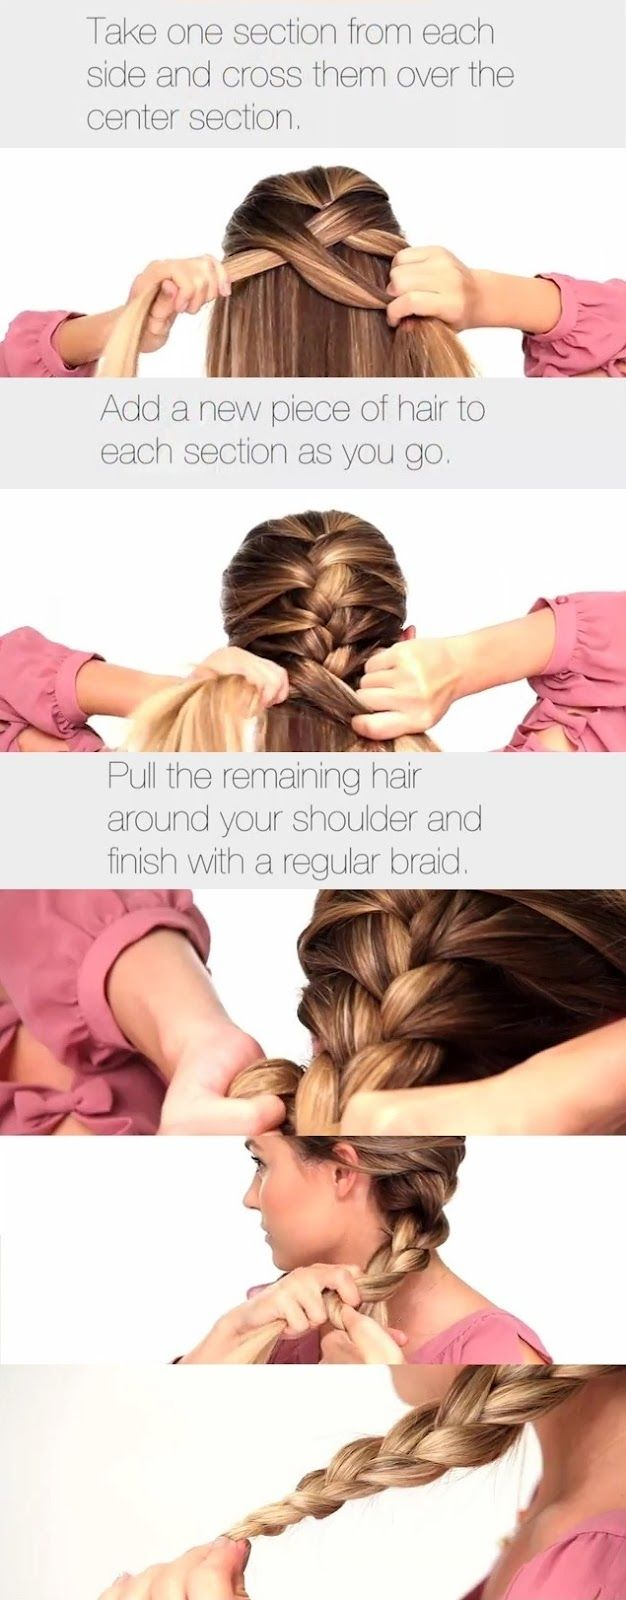 Easier Way To Help You French Braid Your Own Hair! I Fail At Braiding So